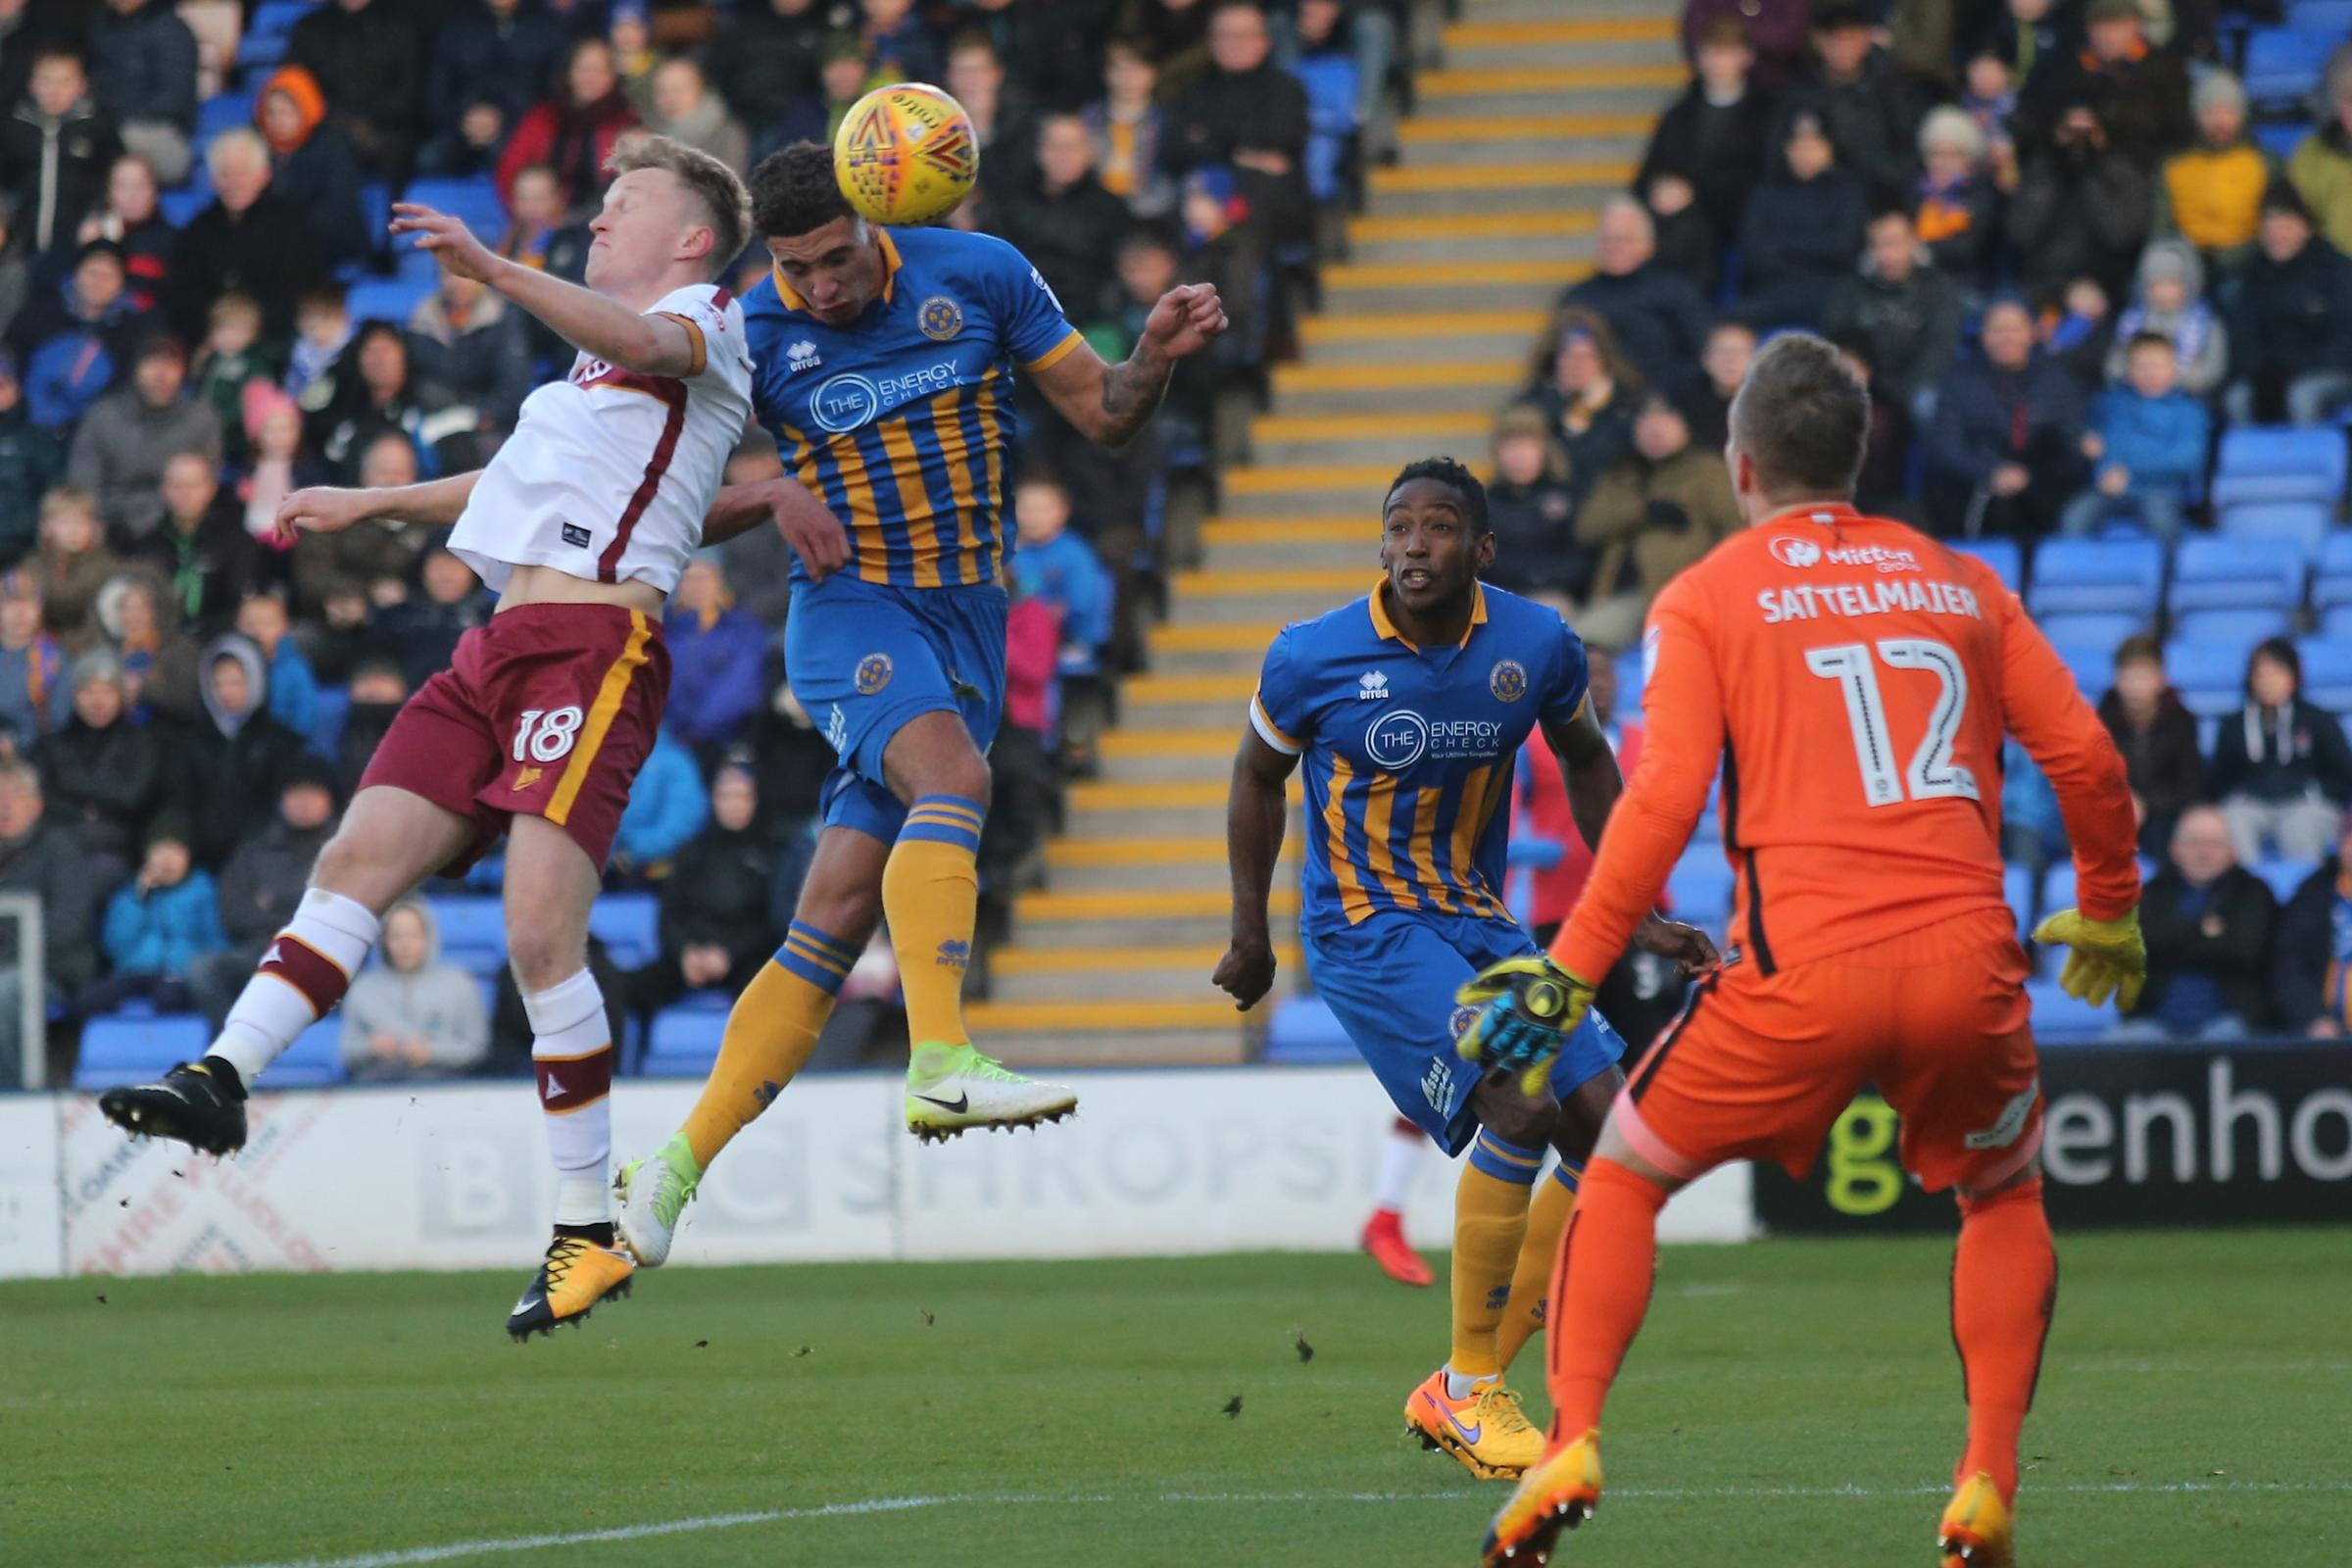 Ben Godfrey competes for a header during his time at Shrewsbury